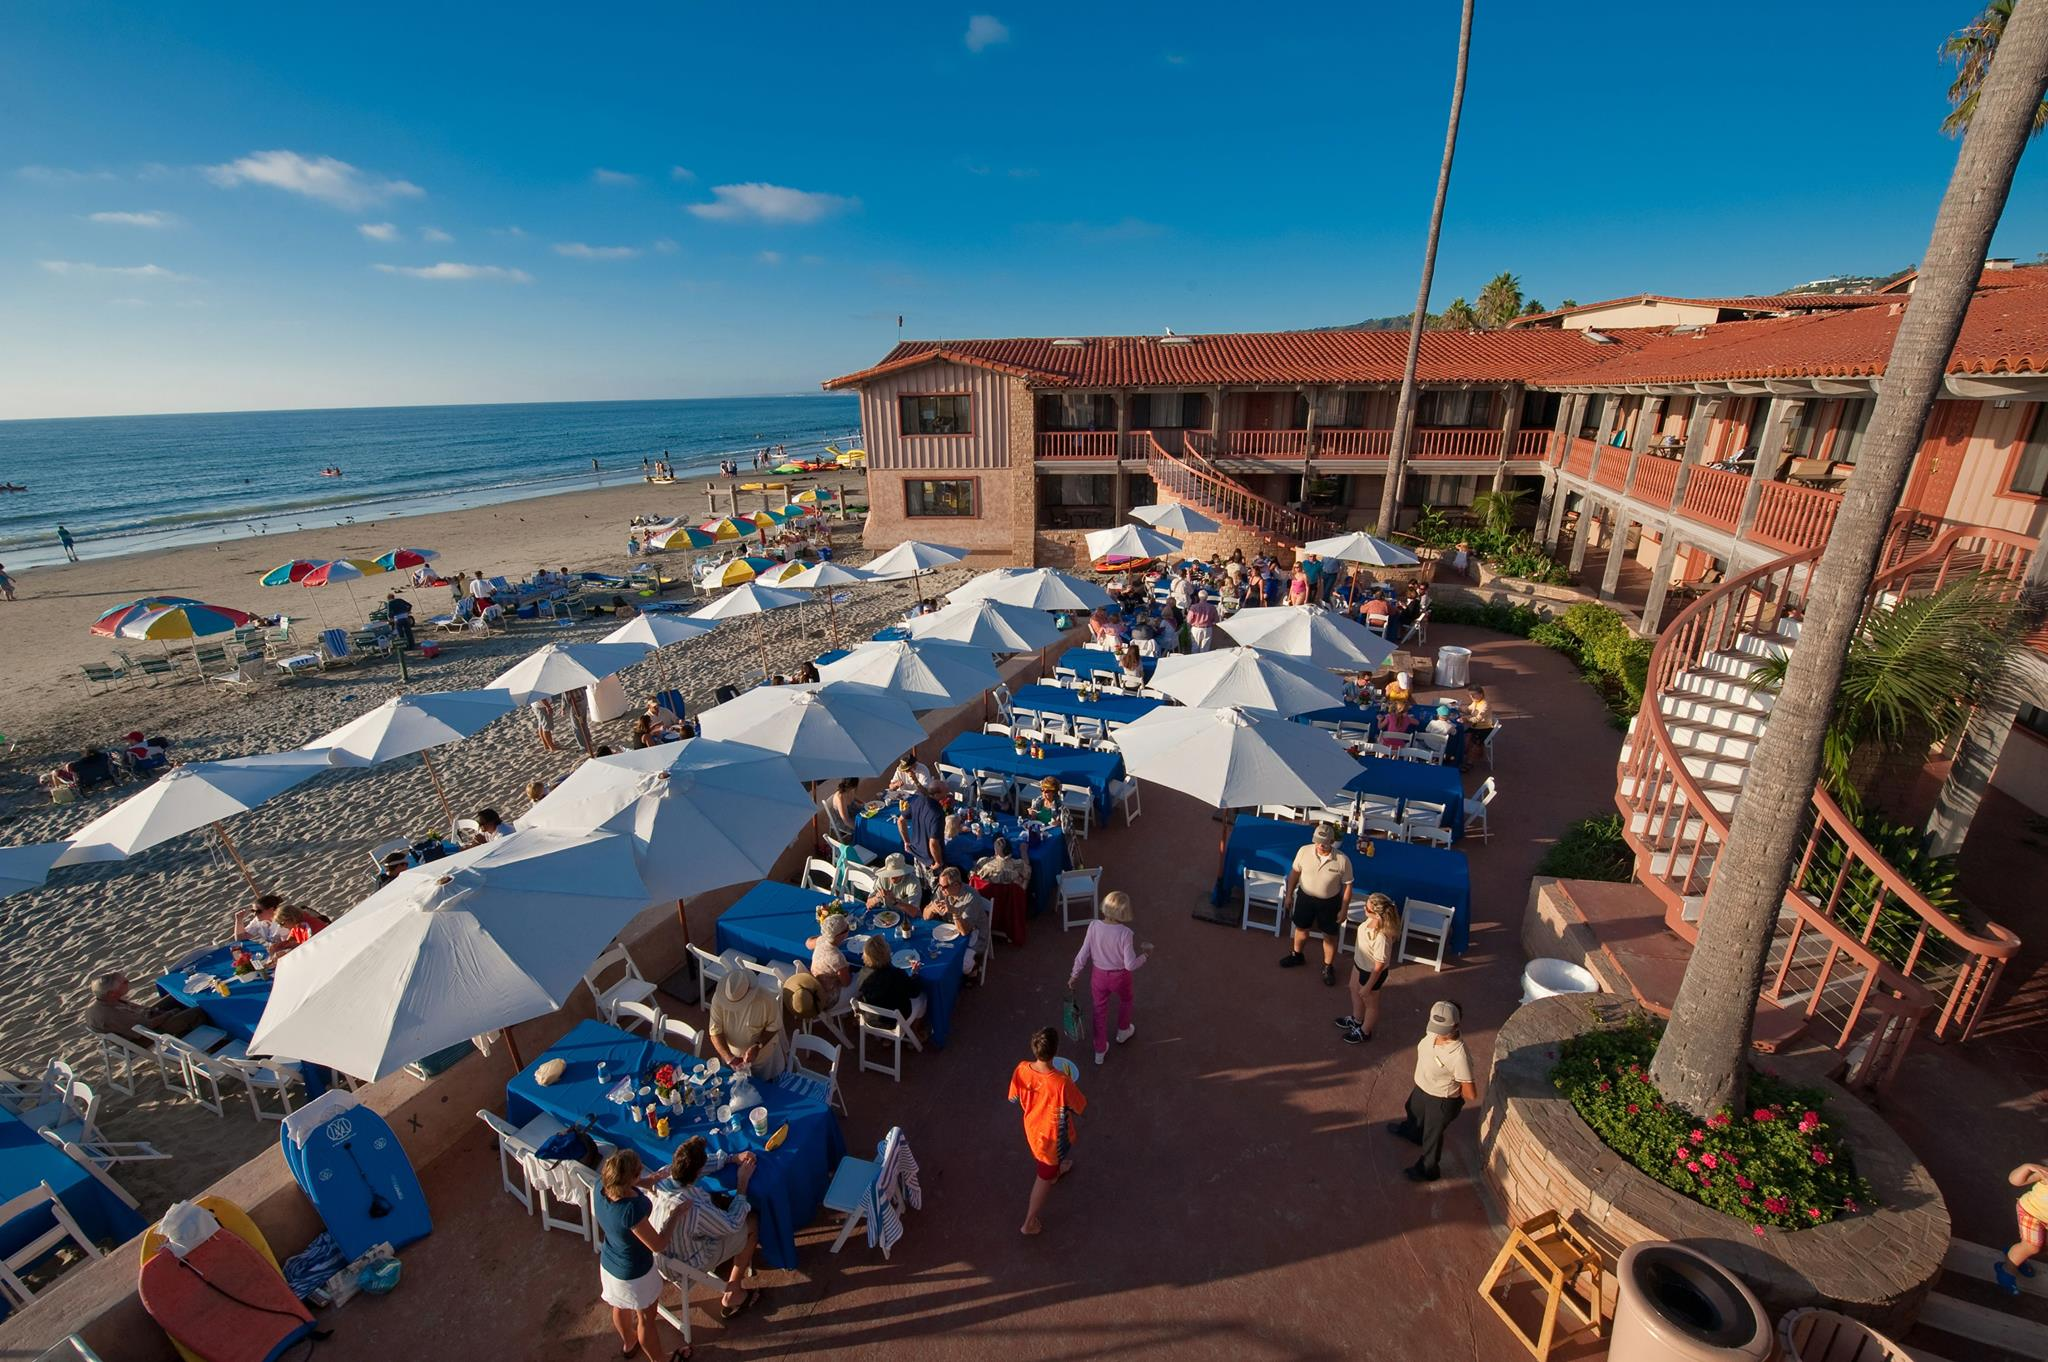 La Jolla Hotels >> Best La Jolla Hotels On The Beach Lajolla Com